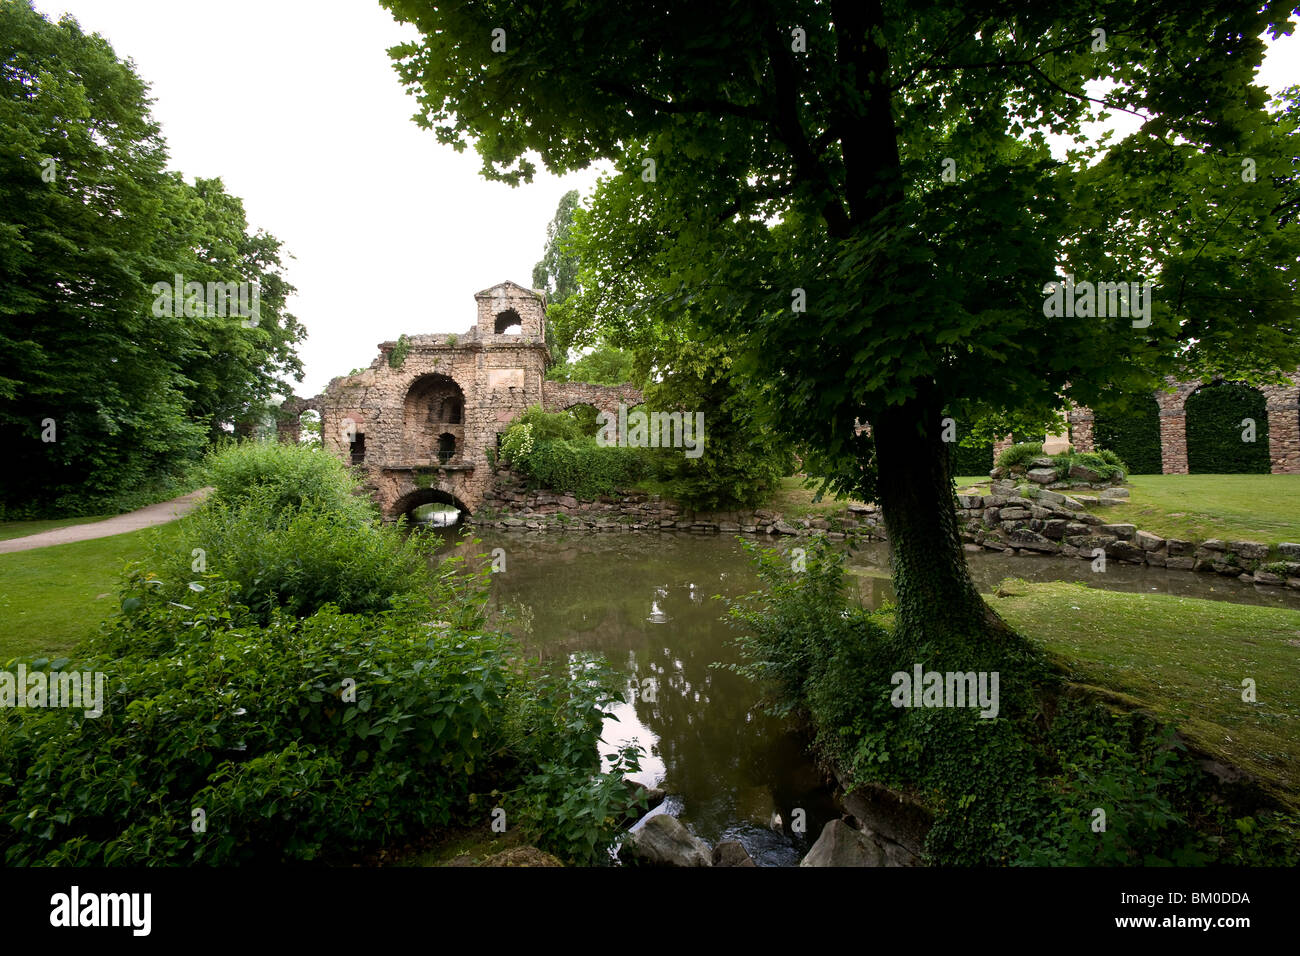 Palace gardens of Schwetzingen castle, Baden-Wuerttemberg, Germany, Europe - Stock Image